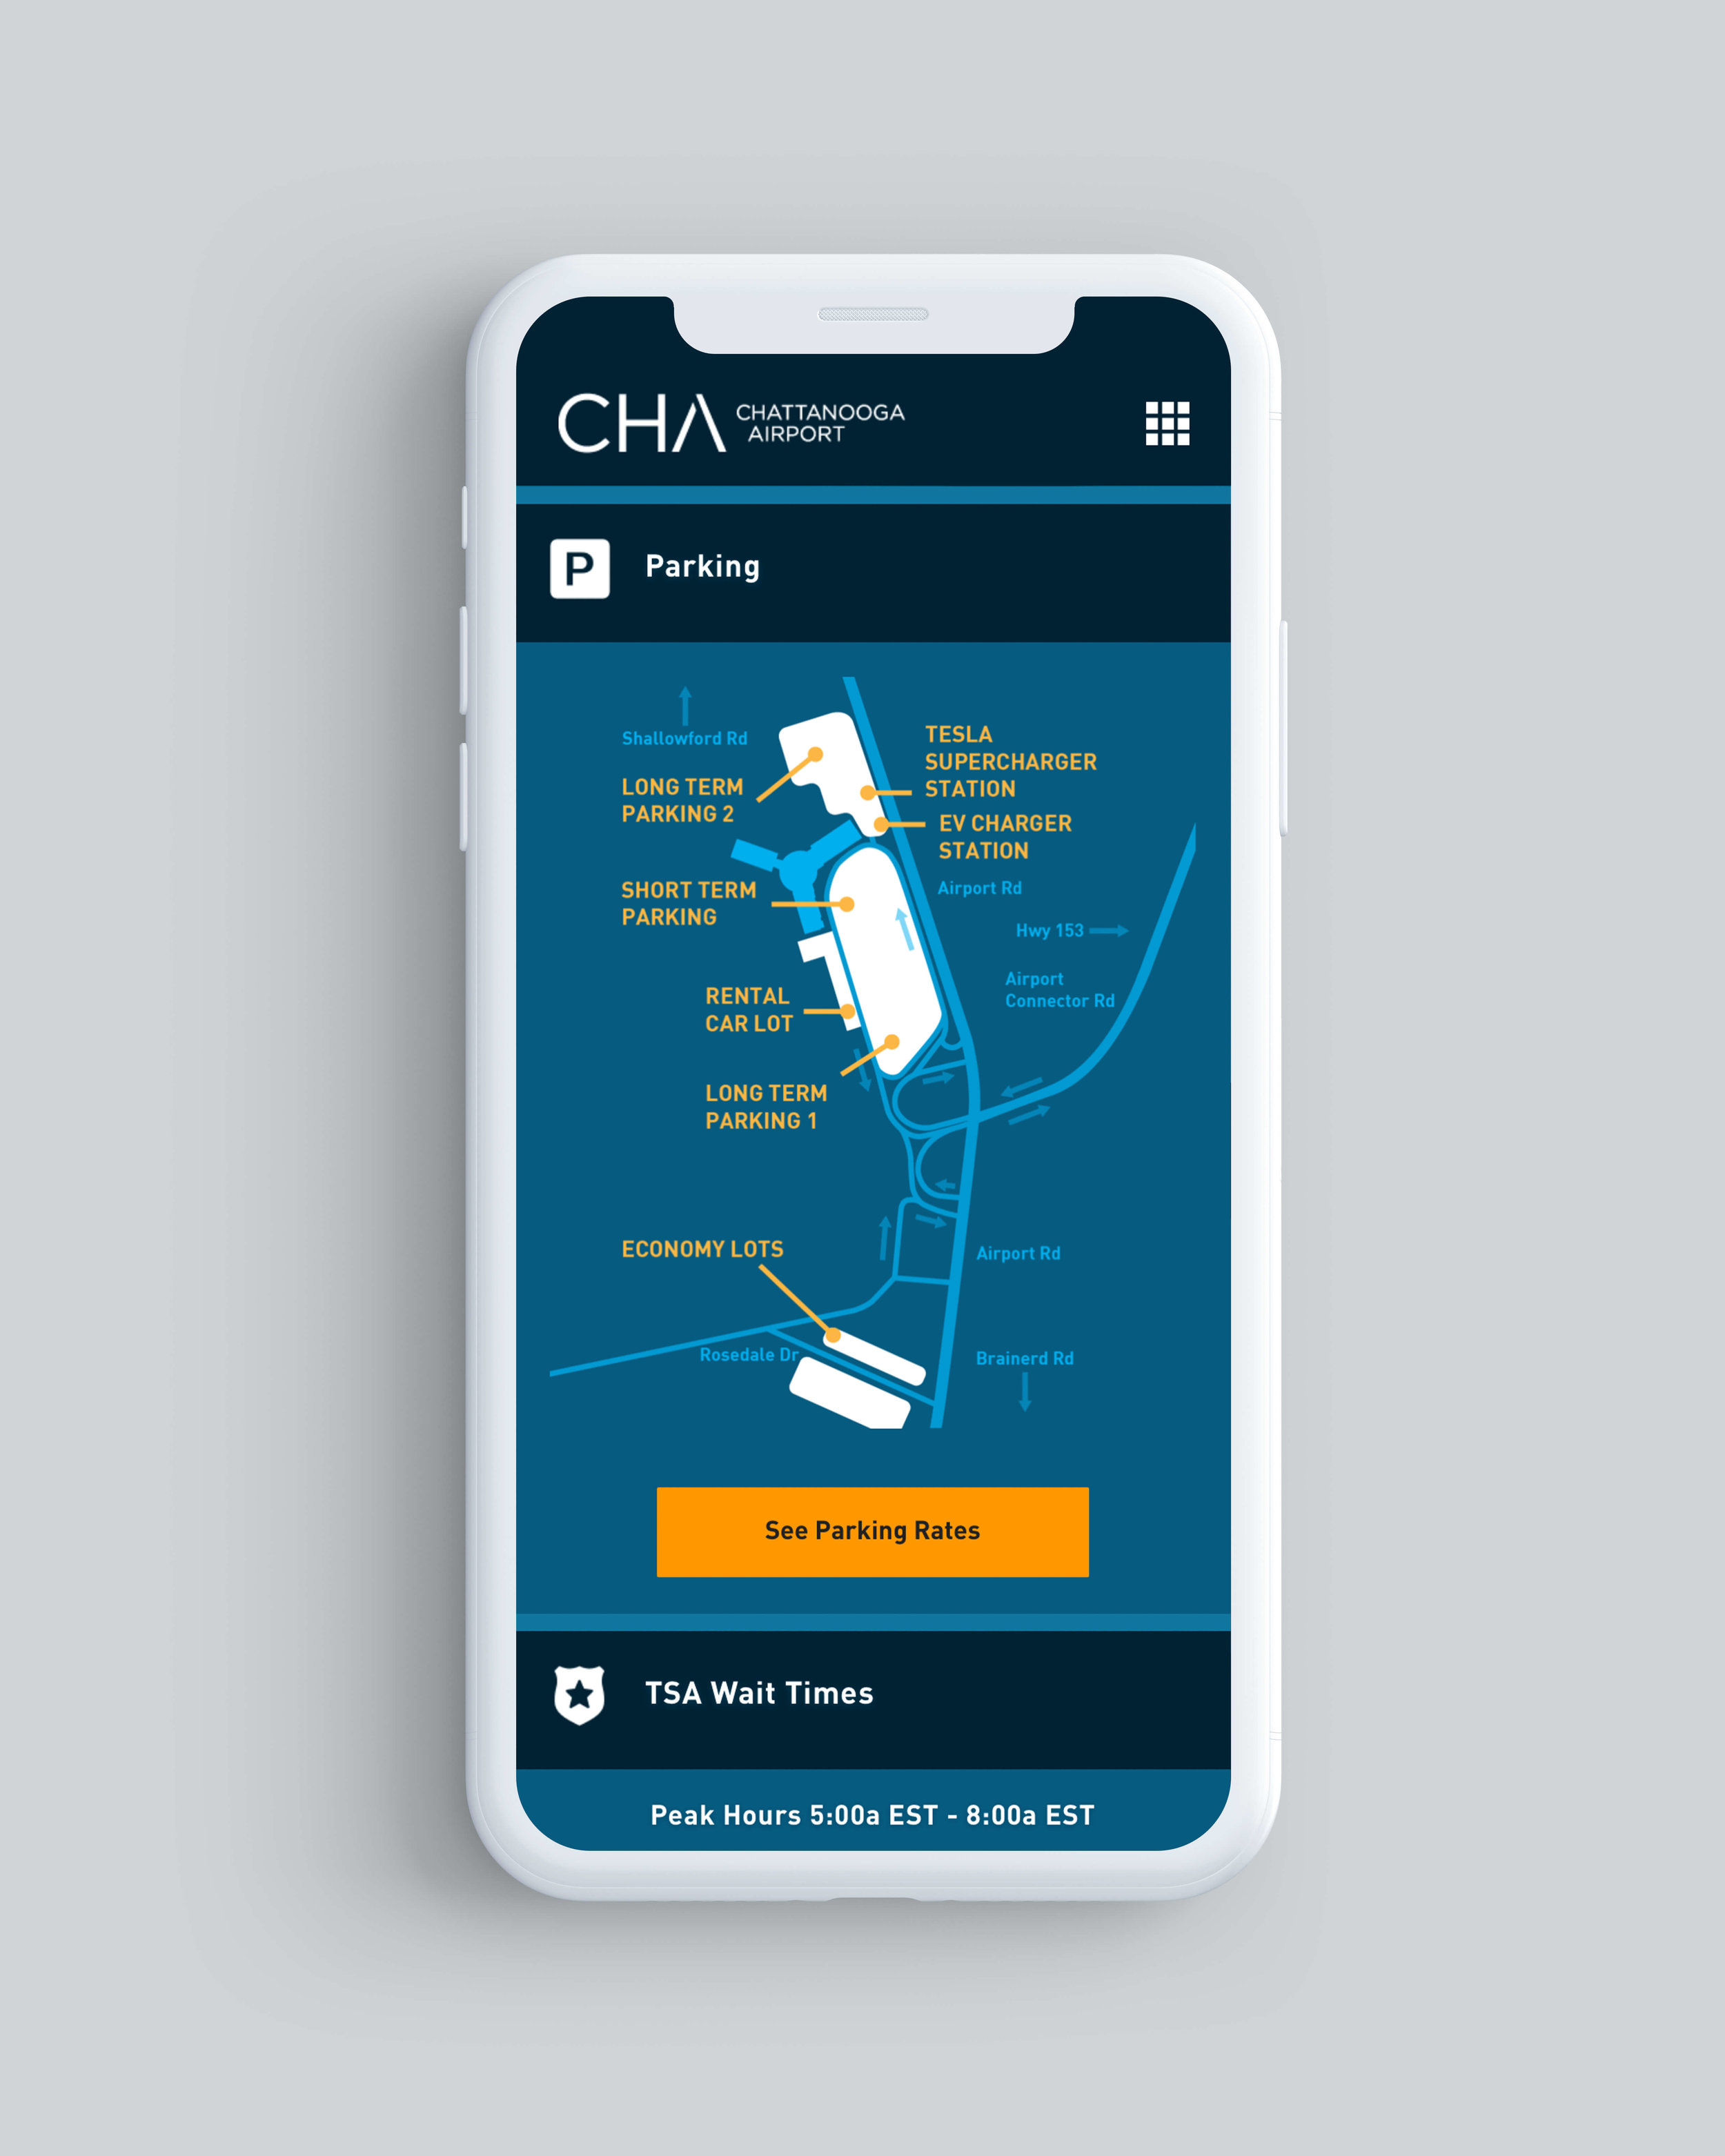 chattanooga-airport-website-mobile-02.jpg